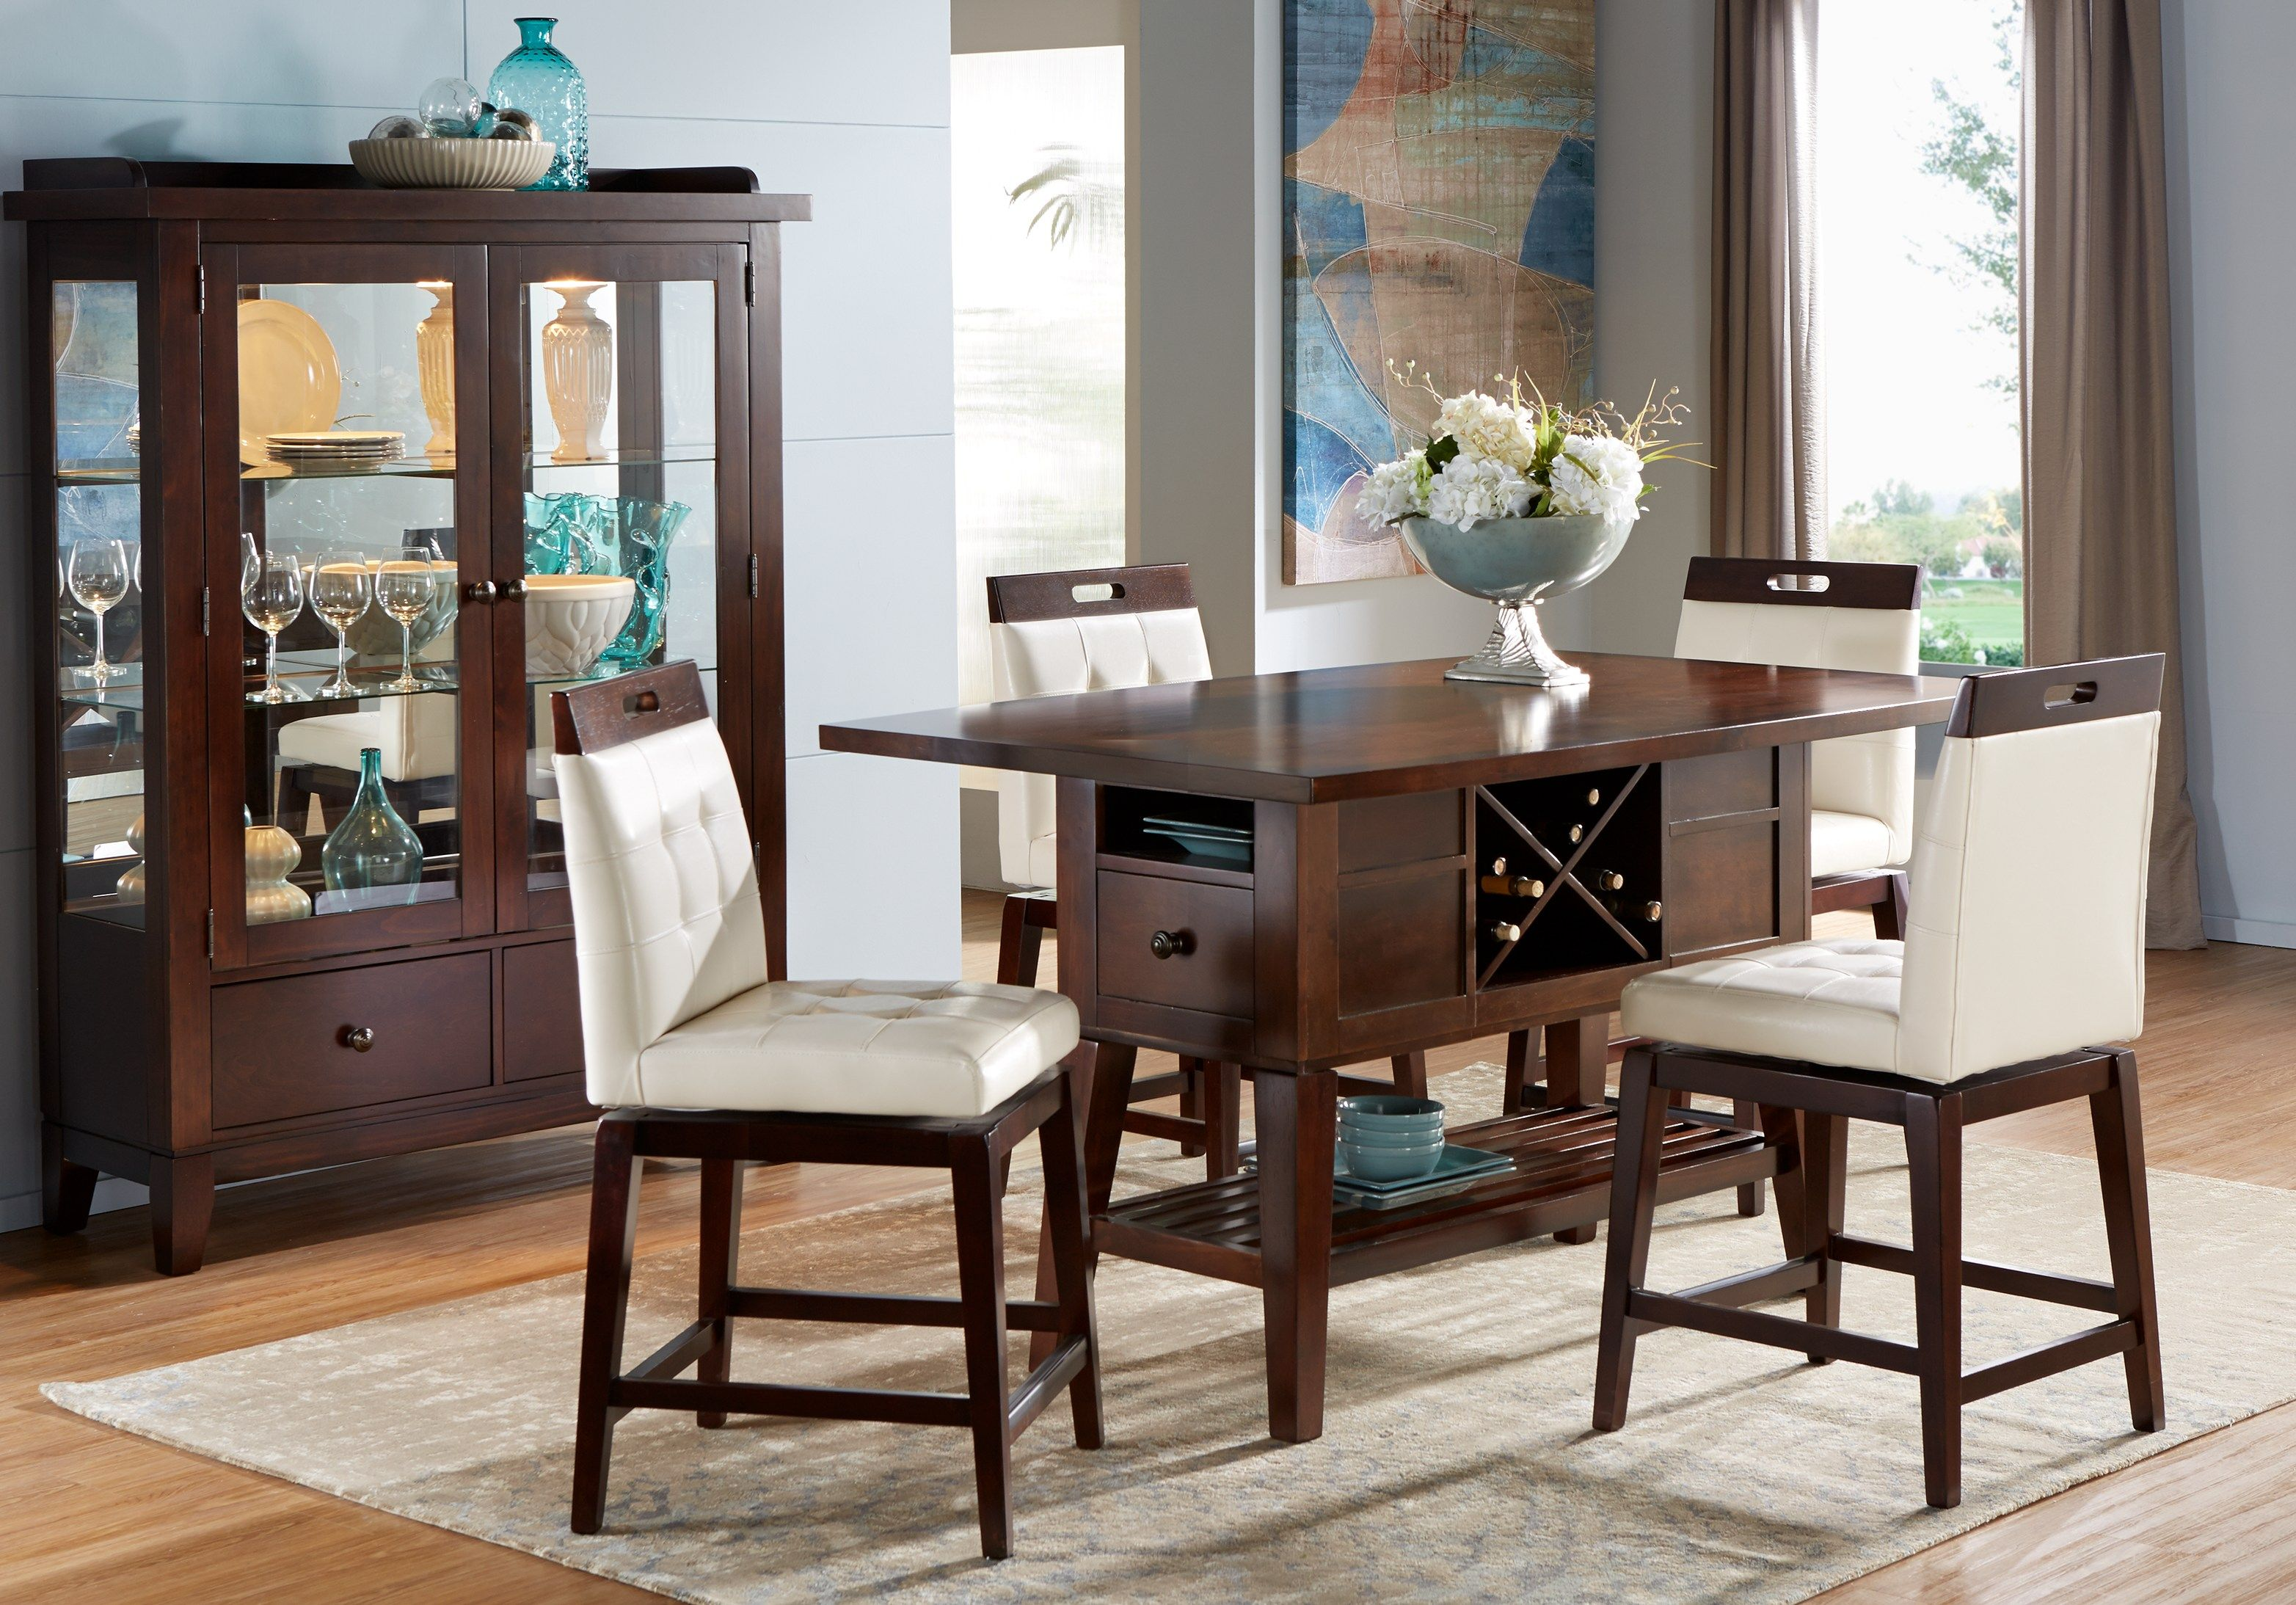 julian place chocolate vanilla 5 pc counter height dining on rooms to go dining room furniture id=89657